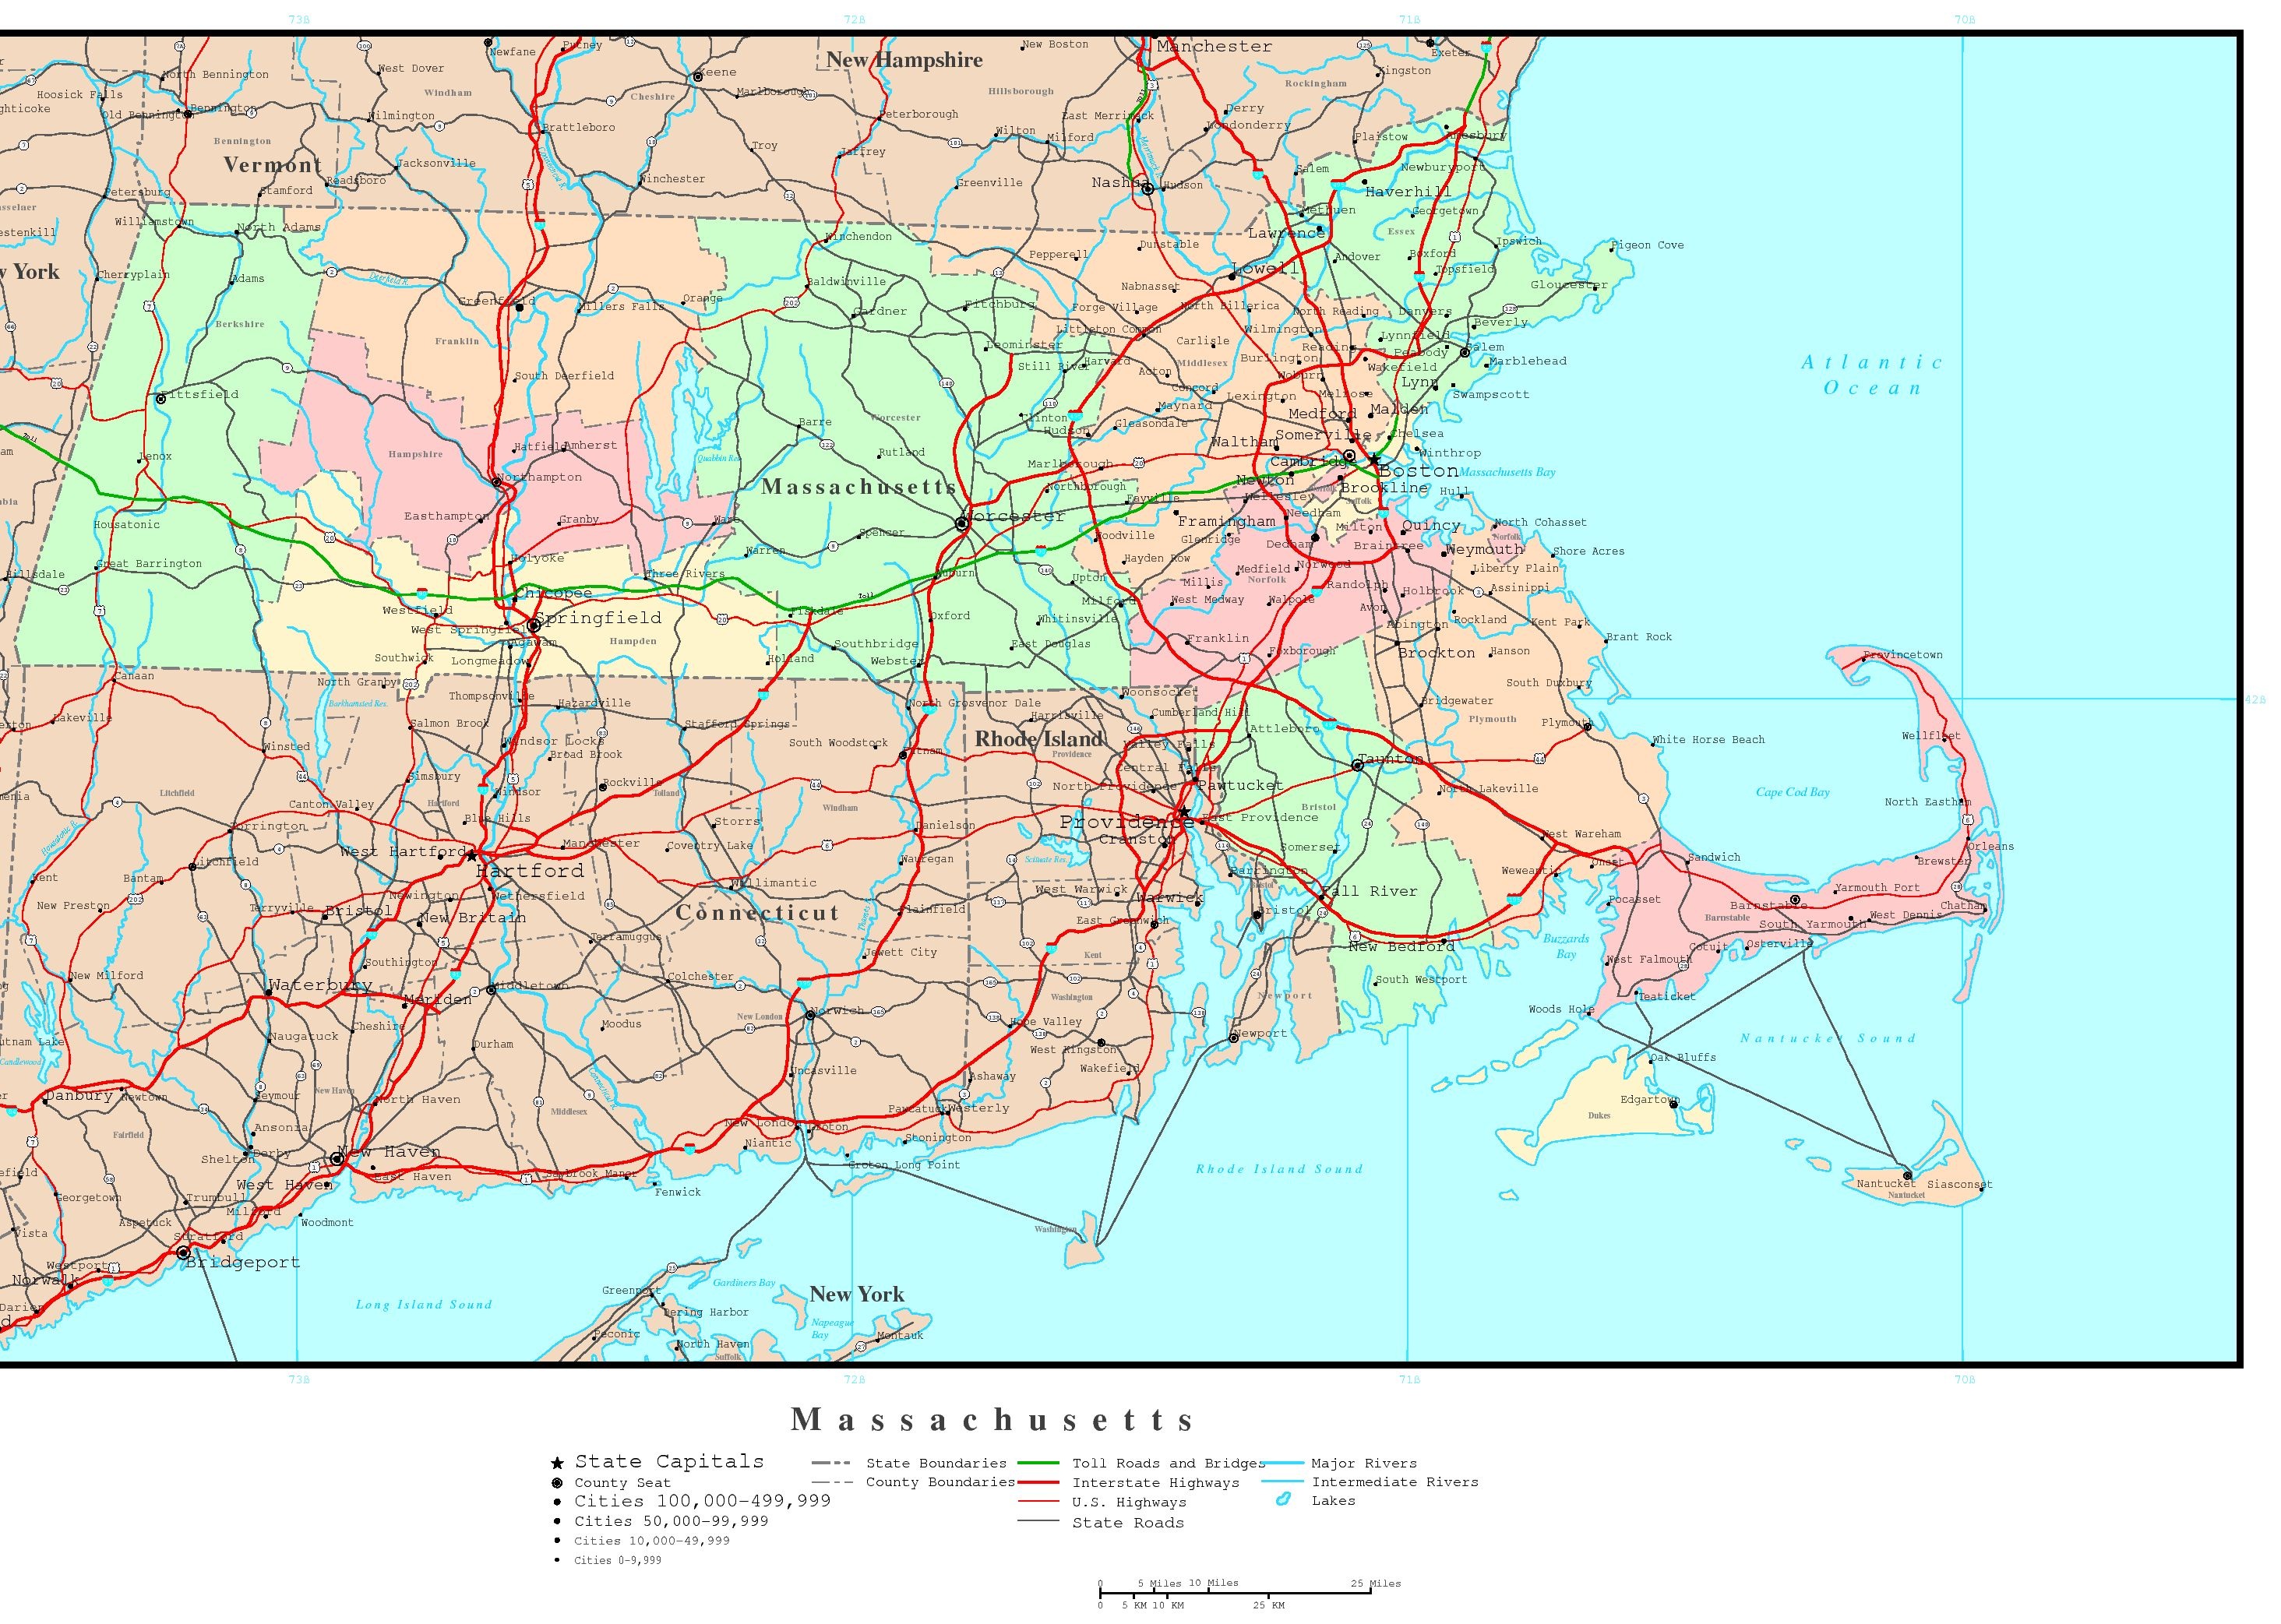 Massachusetts Political Map - Map of massachusetts